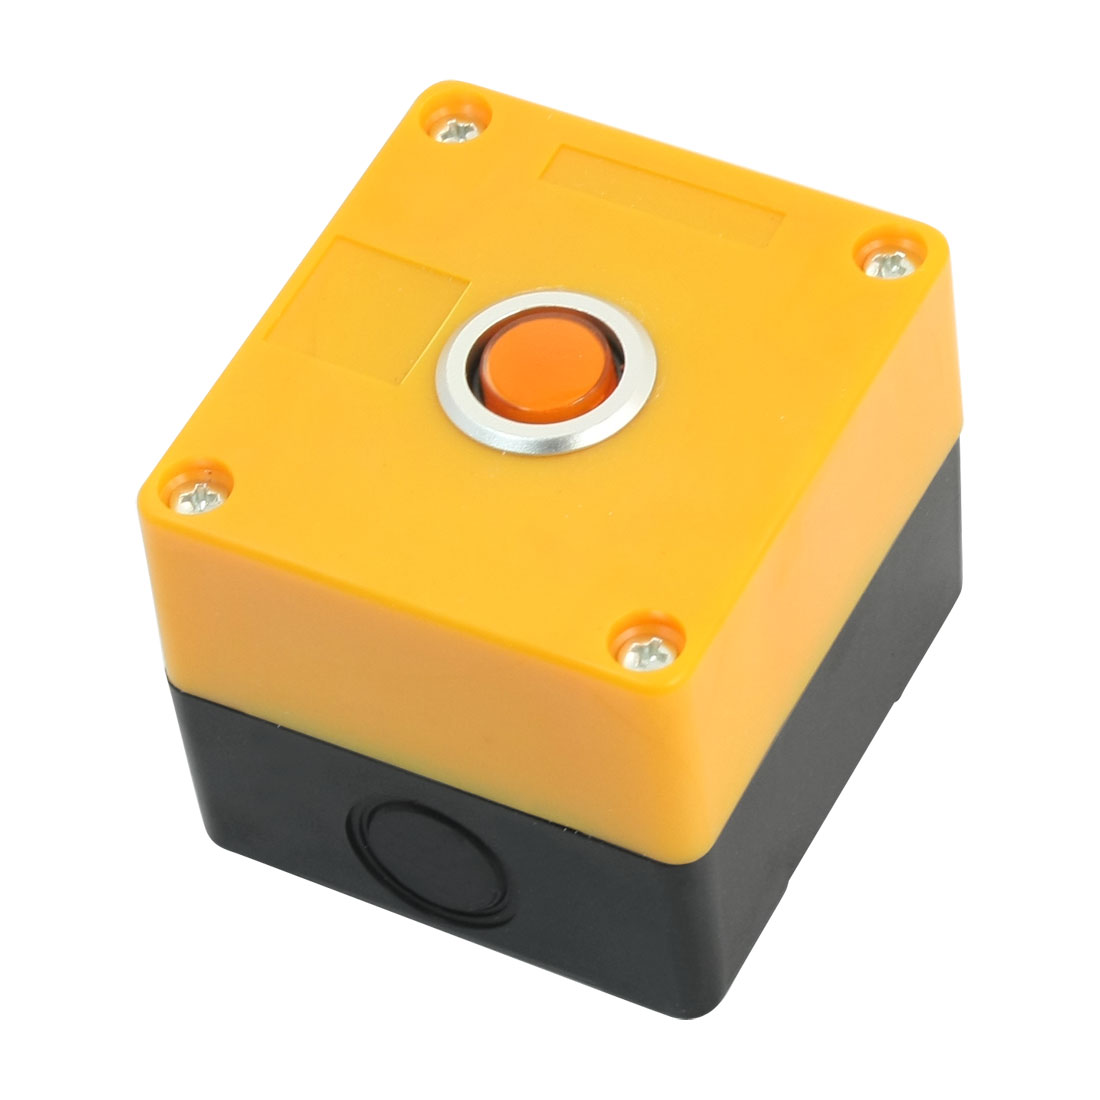 AC 220V 5A SPDT 5Pin 1NO 1NC Latching Orange Pilot Lamp Rectangle Yellow Plastic Case Push Button Station Switch Control Box